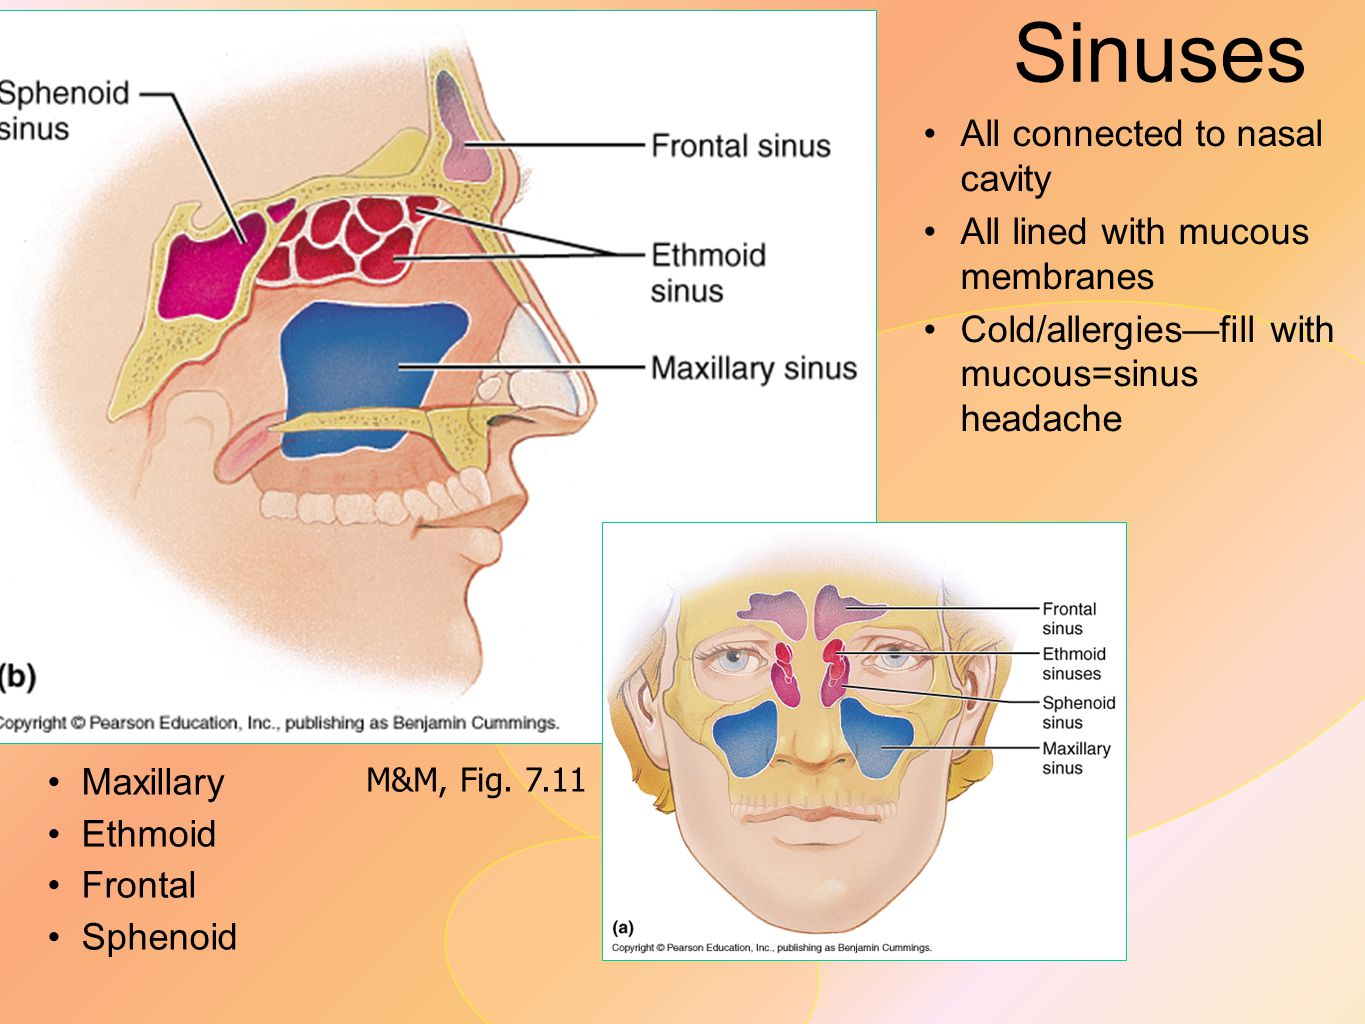 Sinuses All connected to nasal cavity All lined with mucous membranes